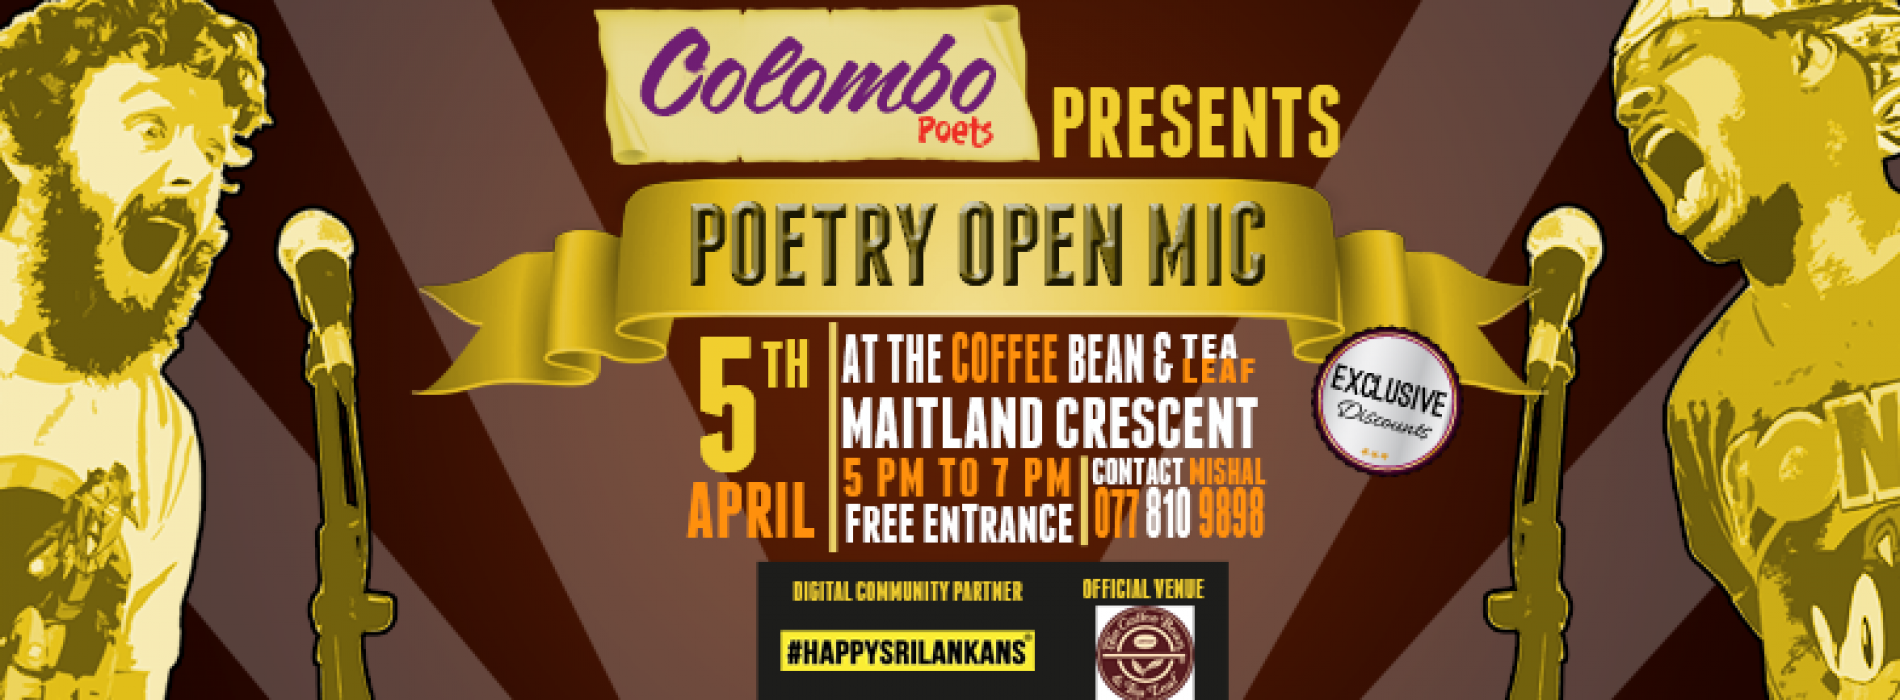 Colombo Poets Presents: Poetry Open Mic [April]